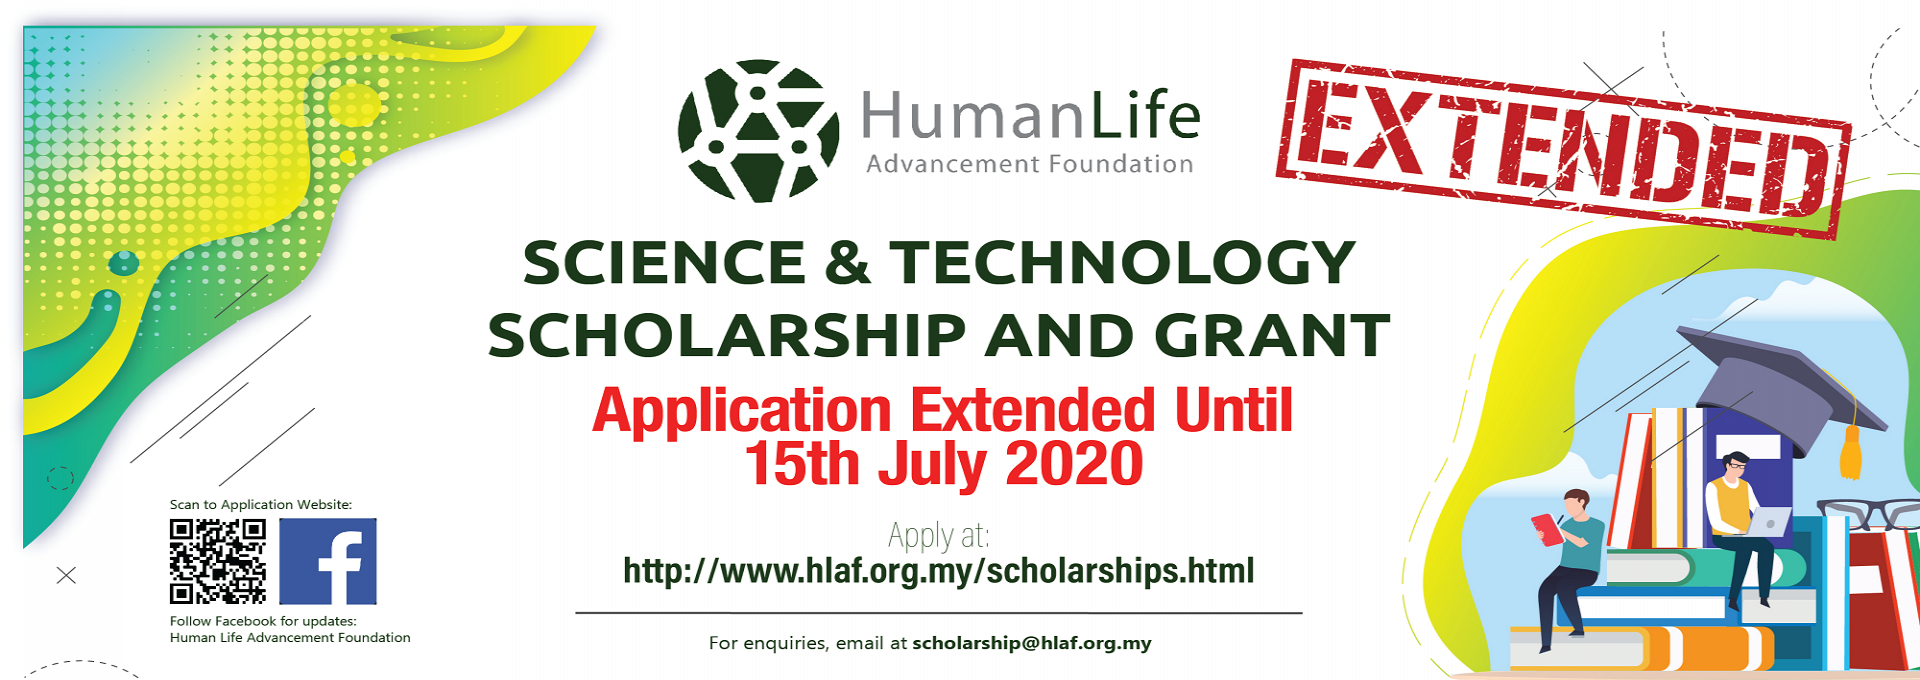 Human Life Advancement Foundation (HLAF) Scholarship For Year 2020 Batch 12 : Open for Application